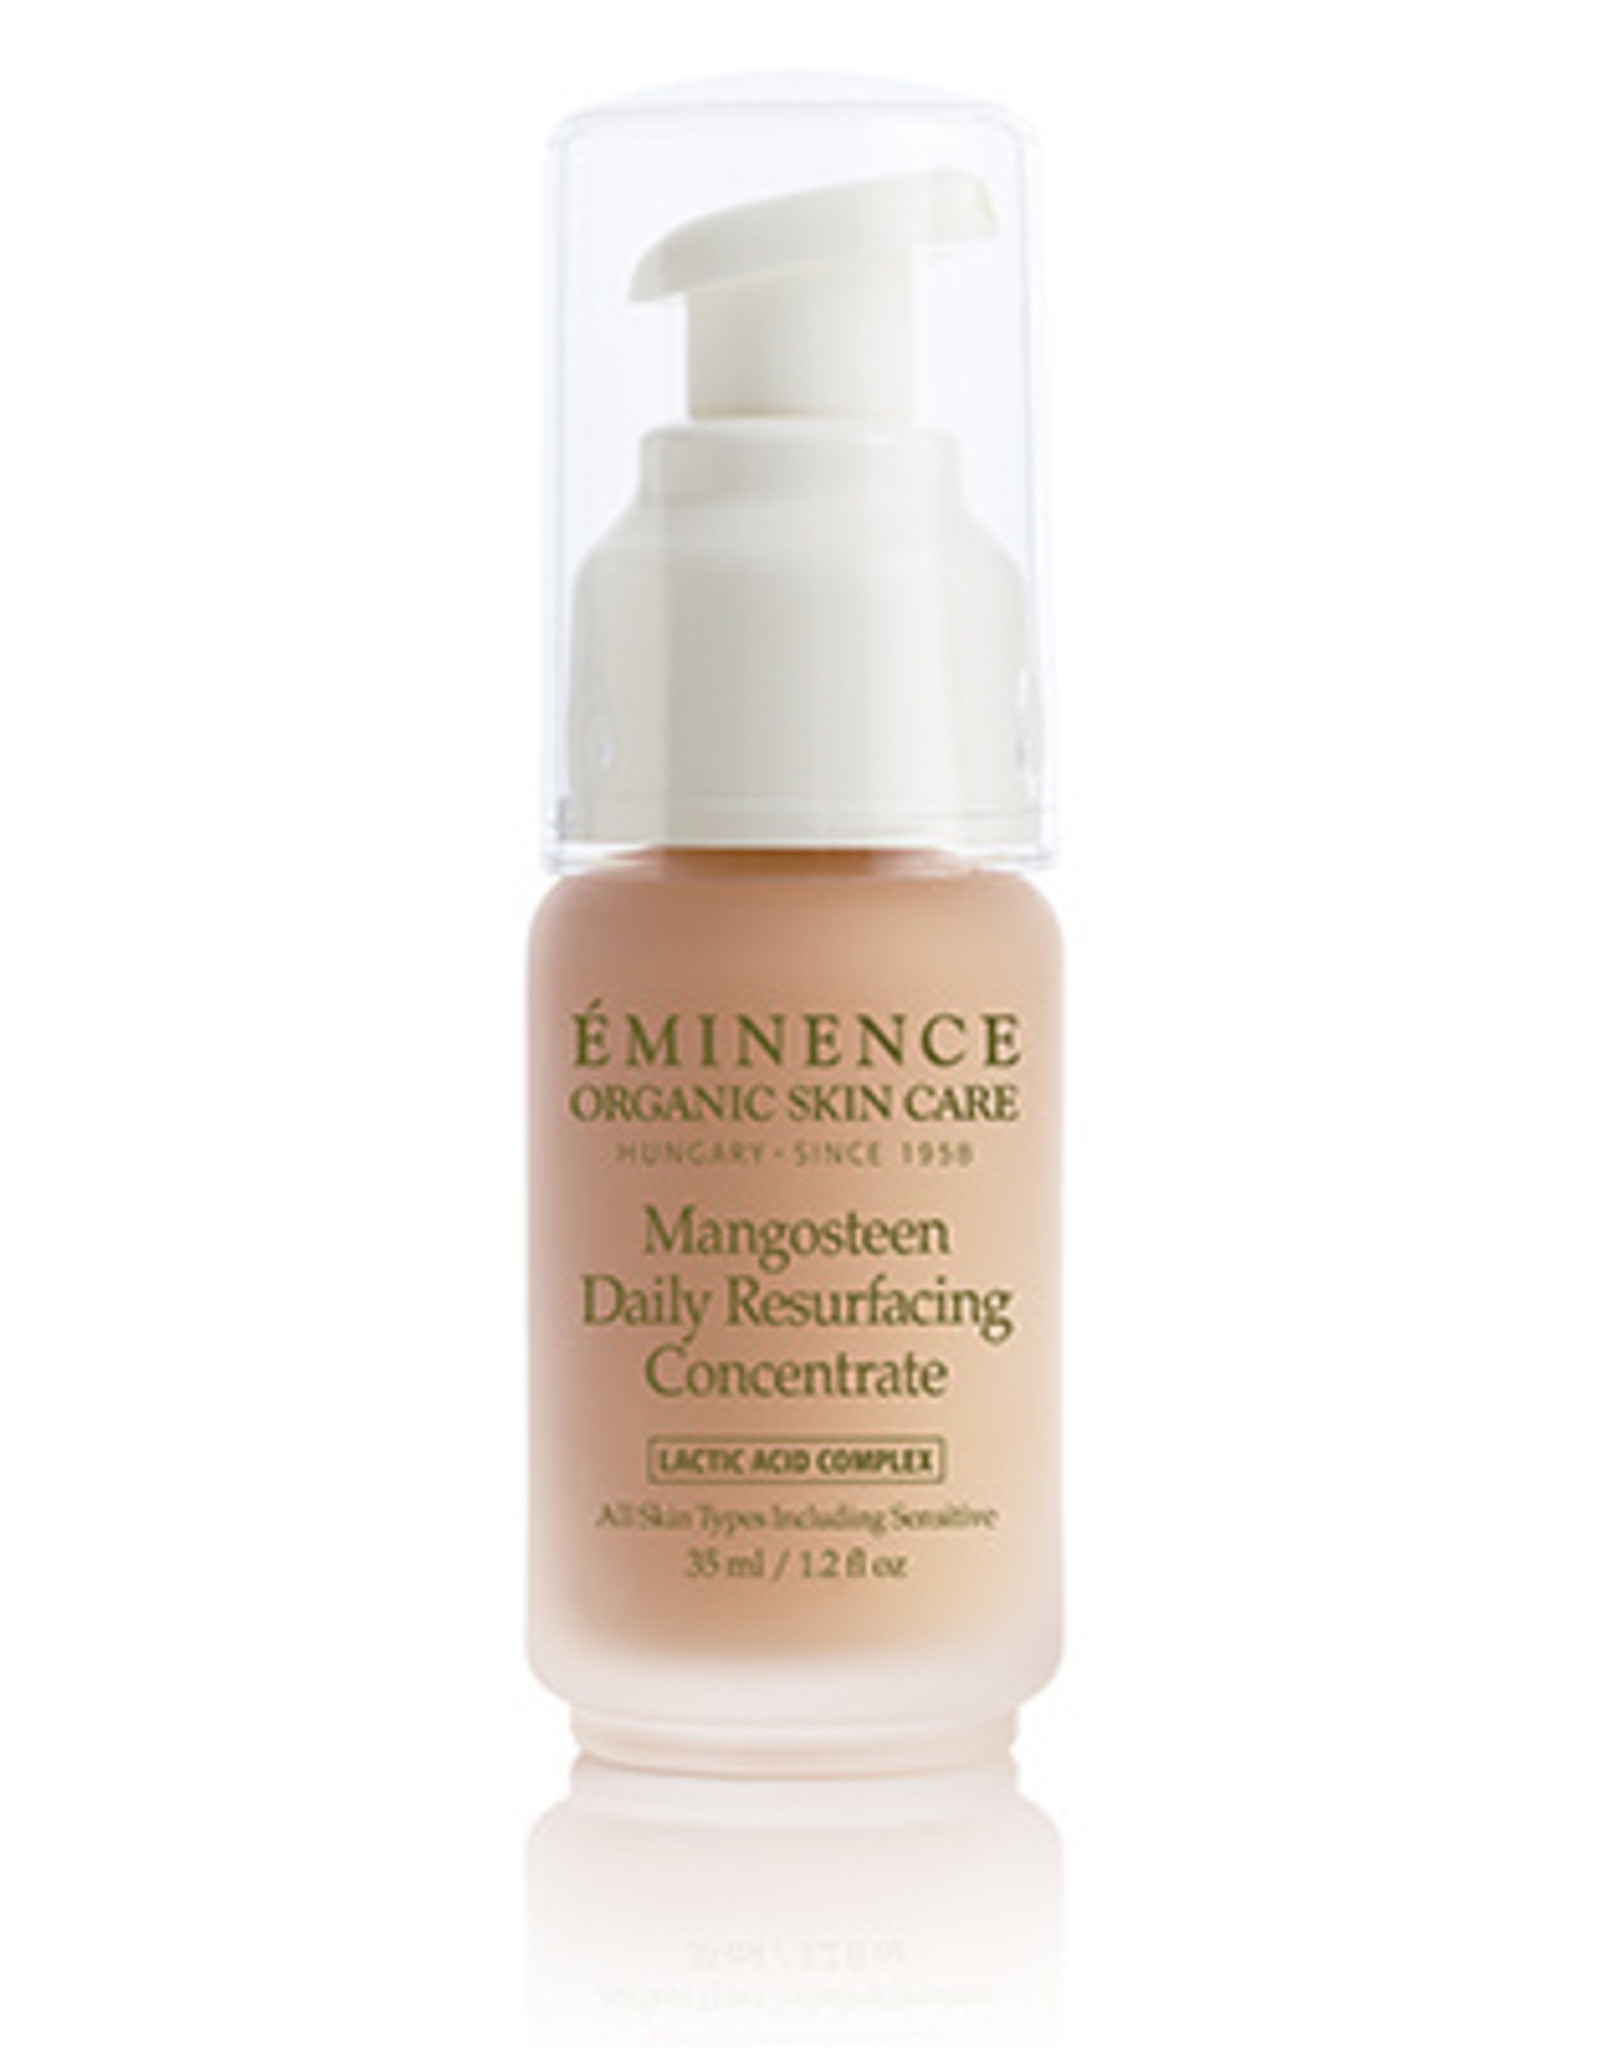 Eminence Organic Skin Care Mangosteen Daily Resurfacing Concentrate